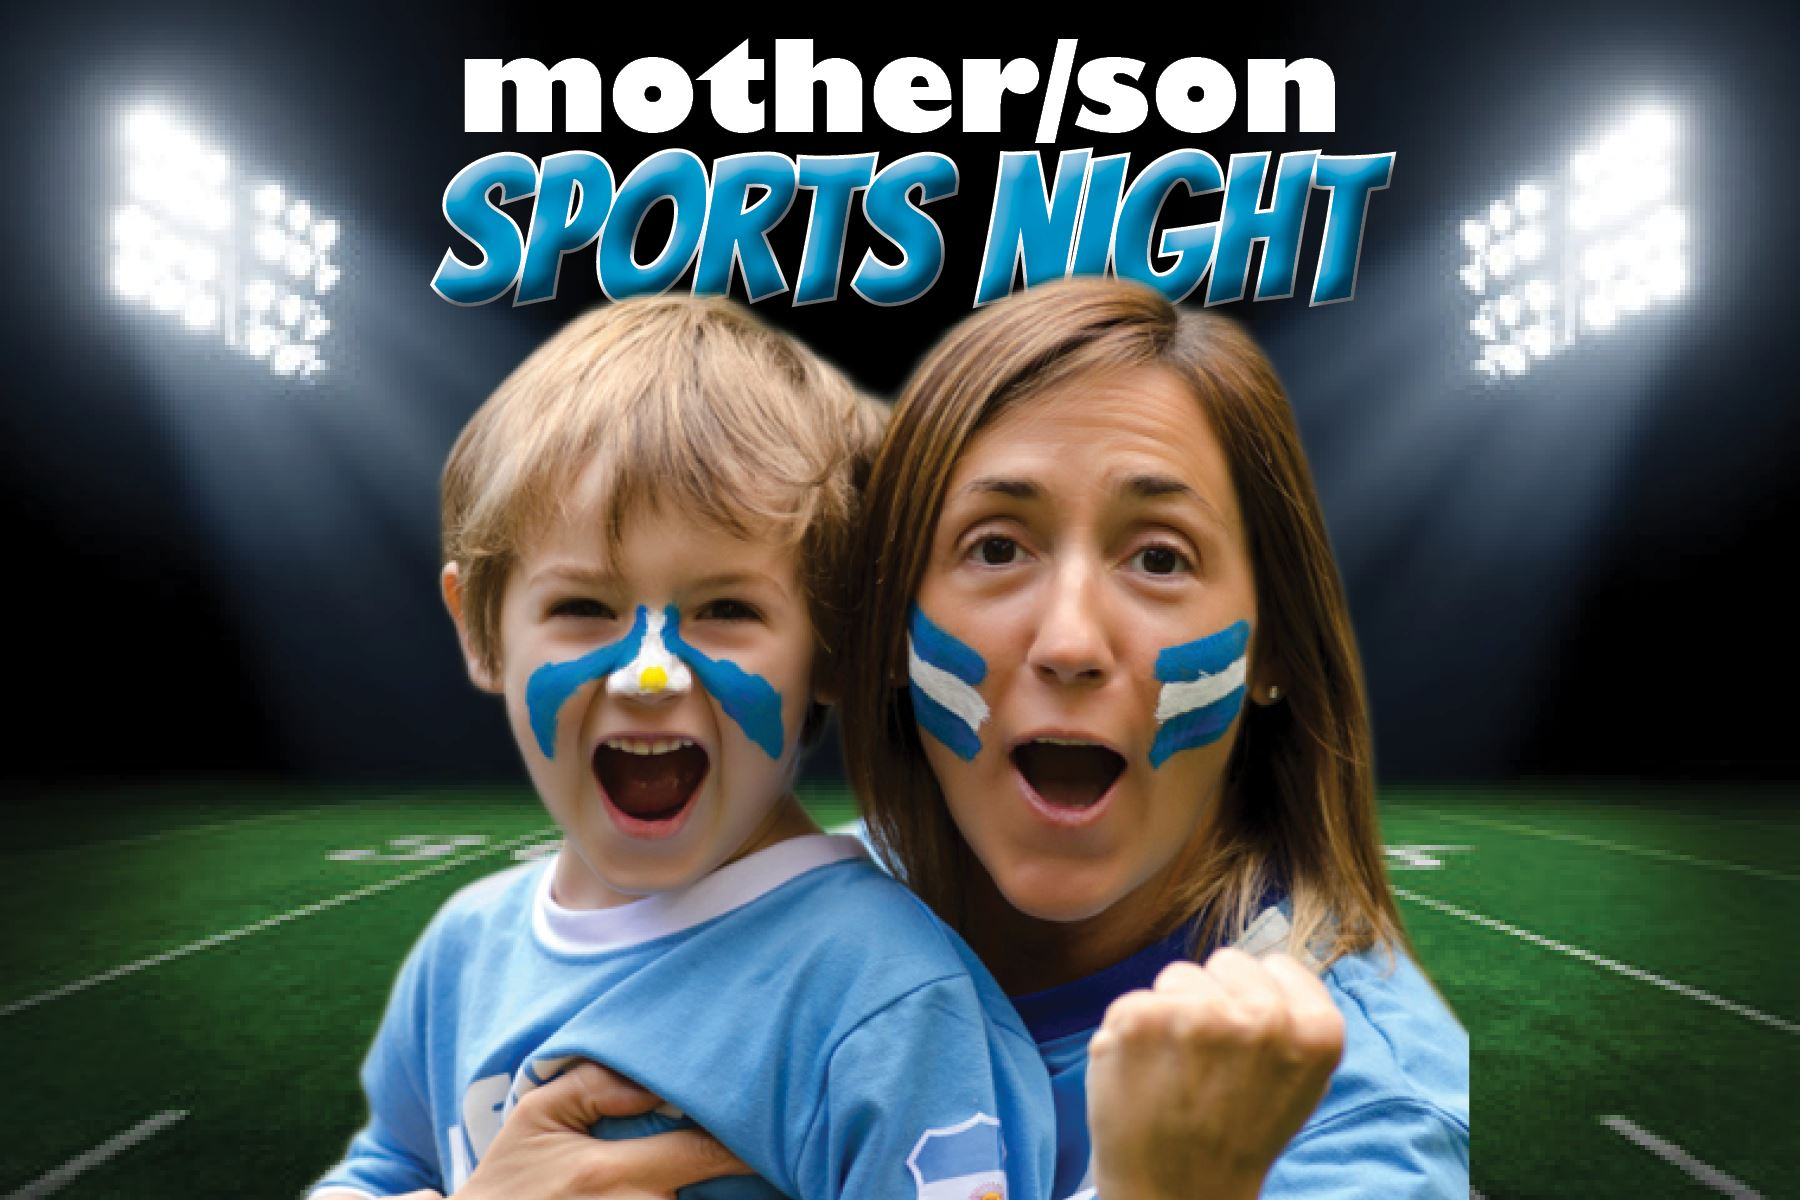 mother son sports night